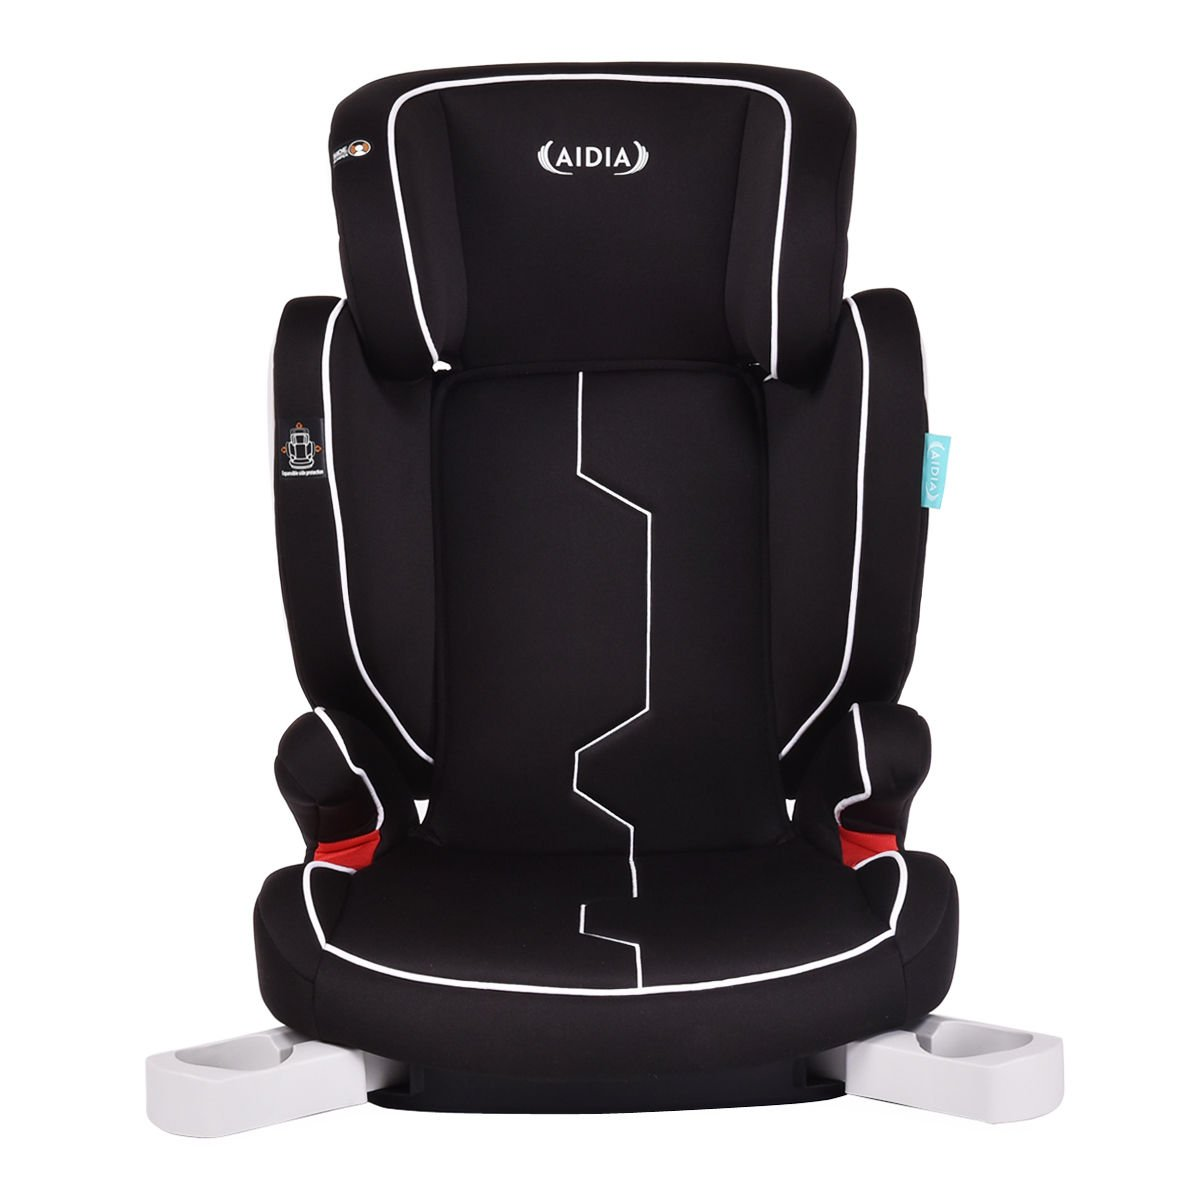 Aidia Baby Booster Car Seat,Portable Adjustable High Back Safety Toddler Car Seat w/ Cup Holder